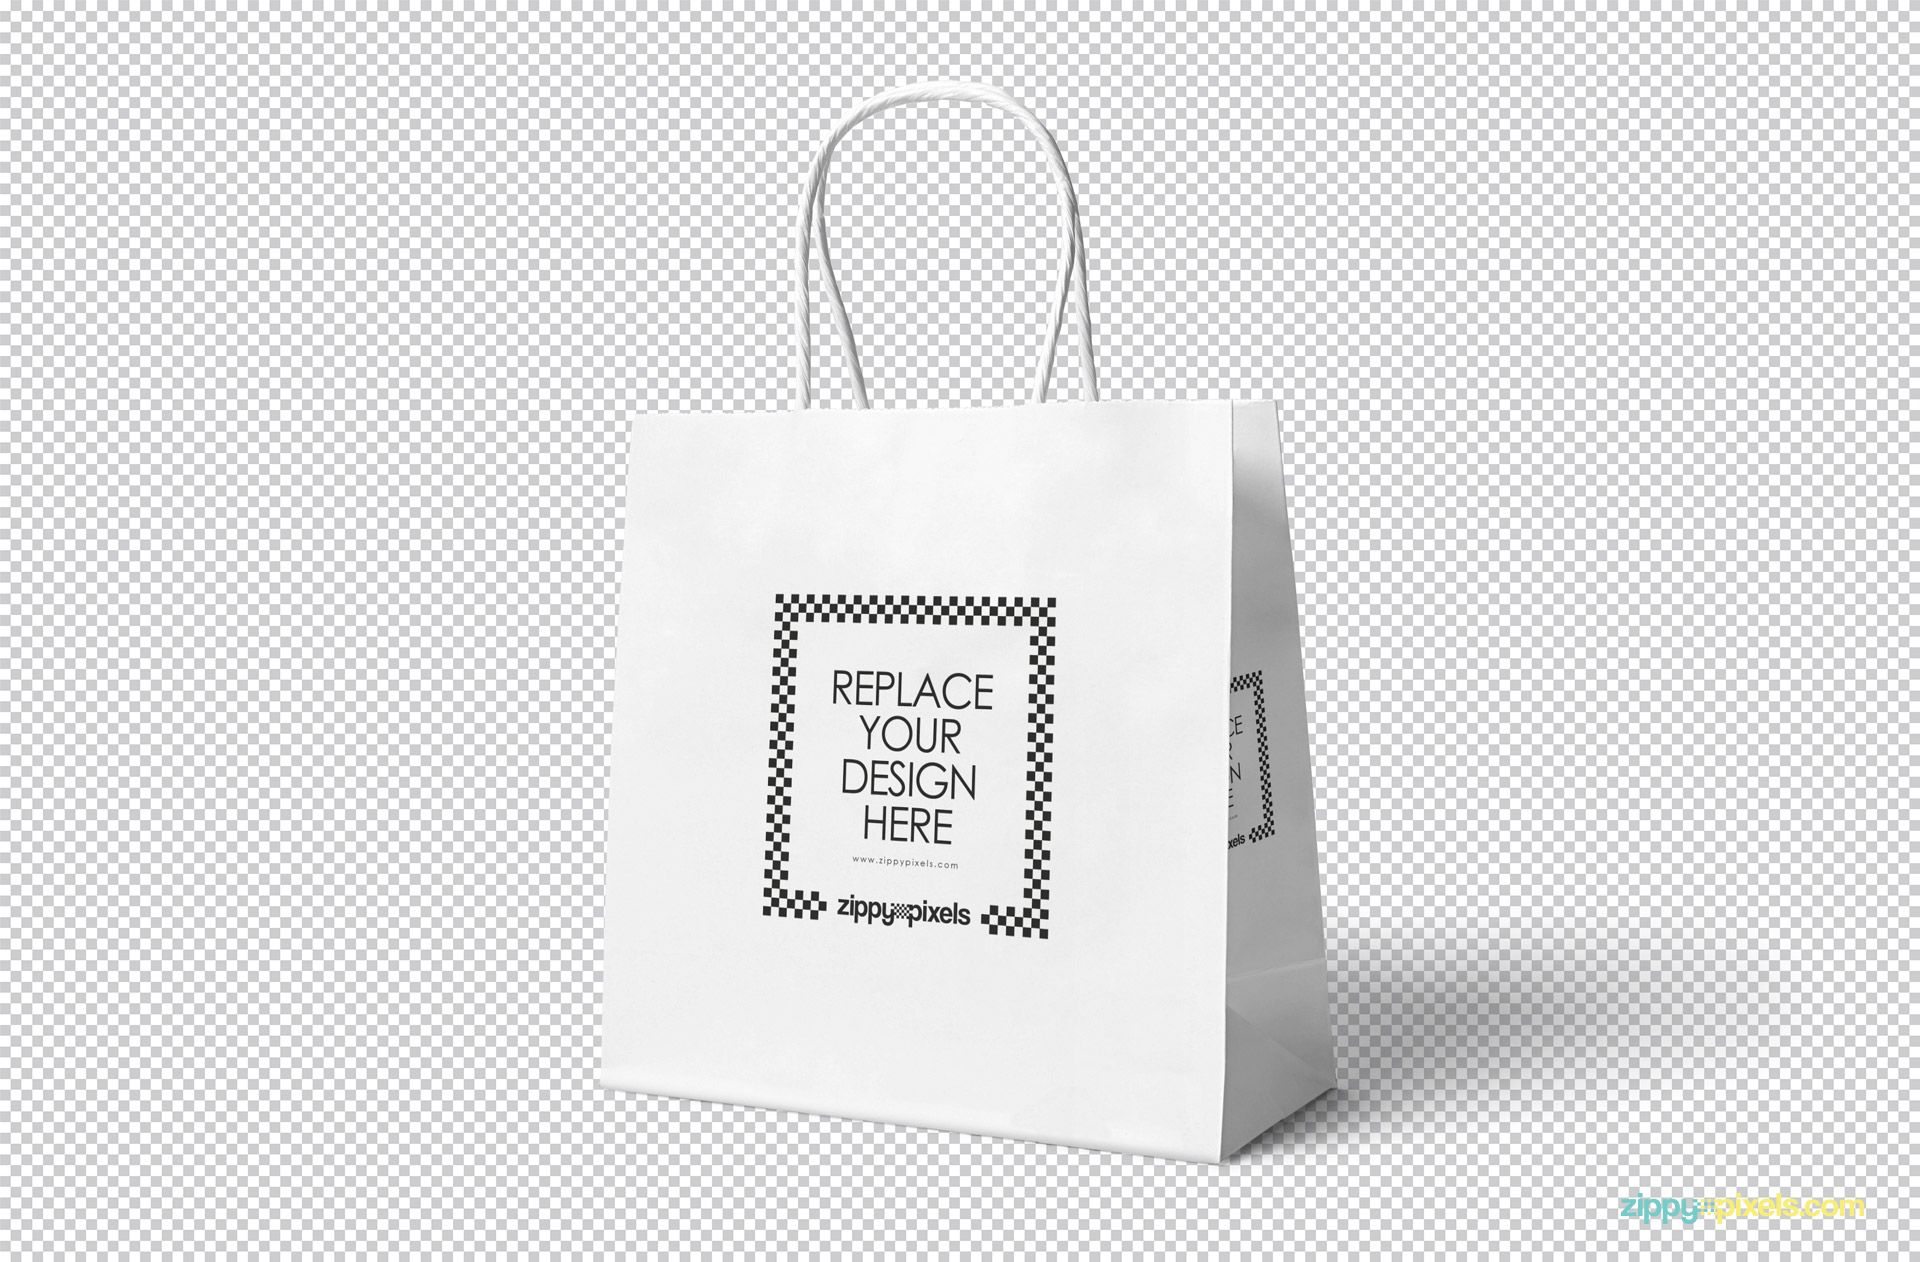 Download Free Attractive Gift Bag Mockup Zippypixels Bag Mockup Attractive Gift Psd Templates